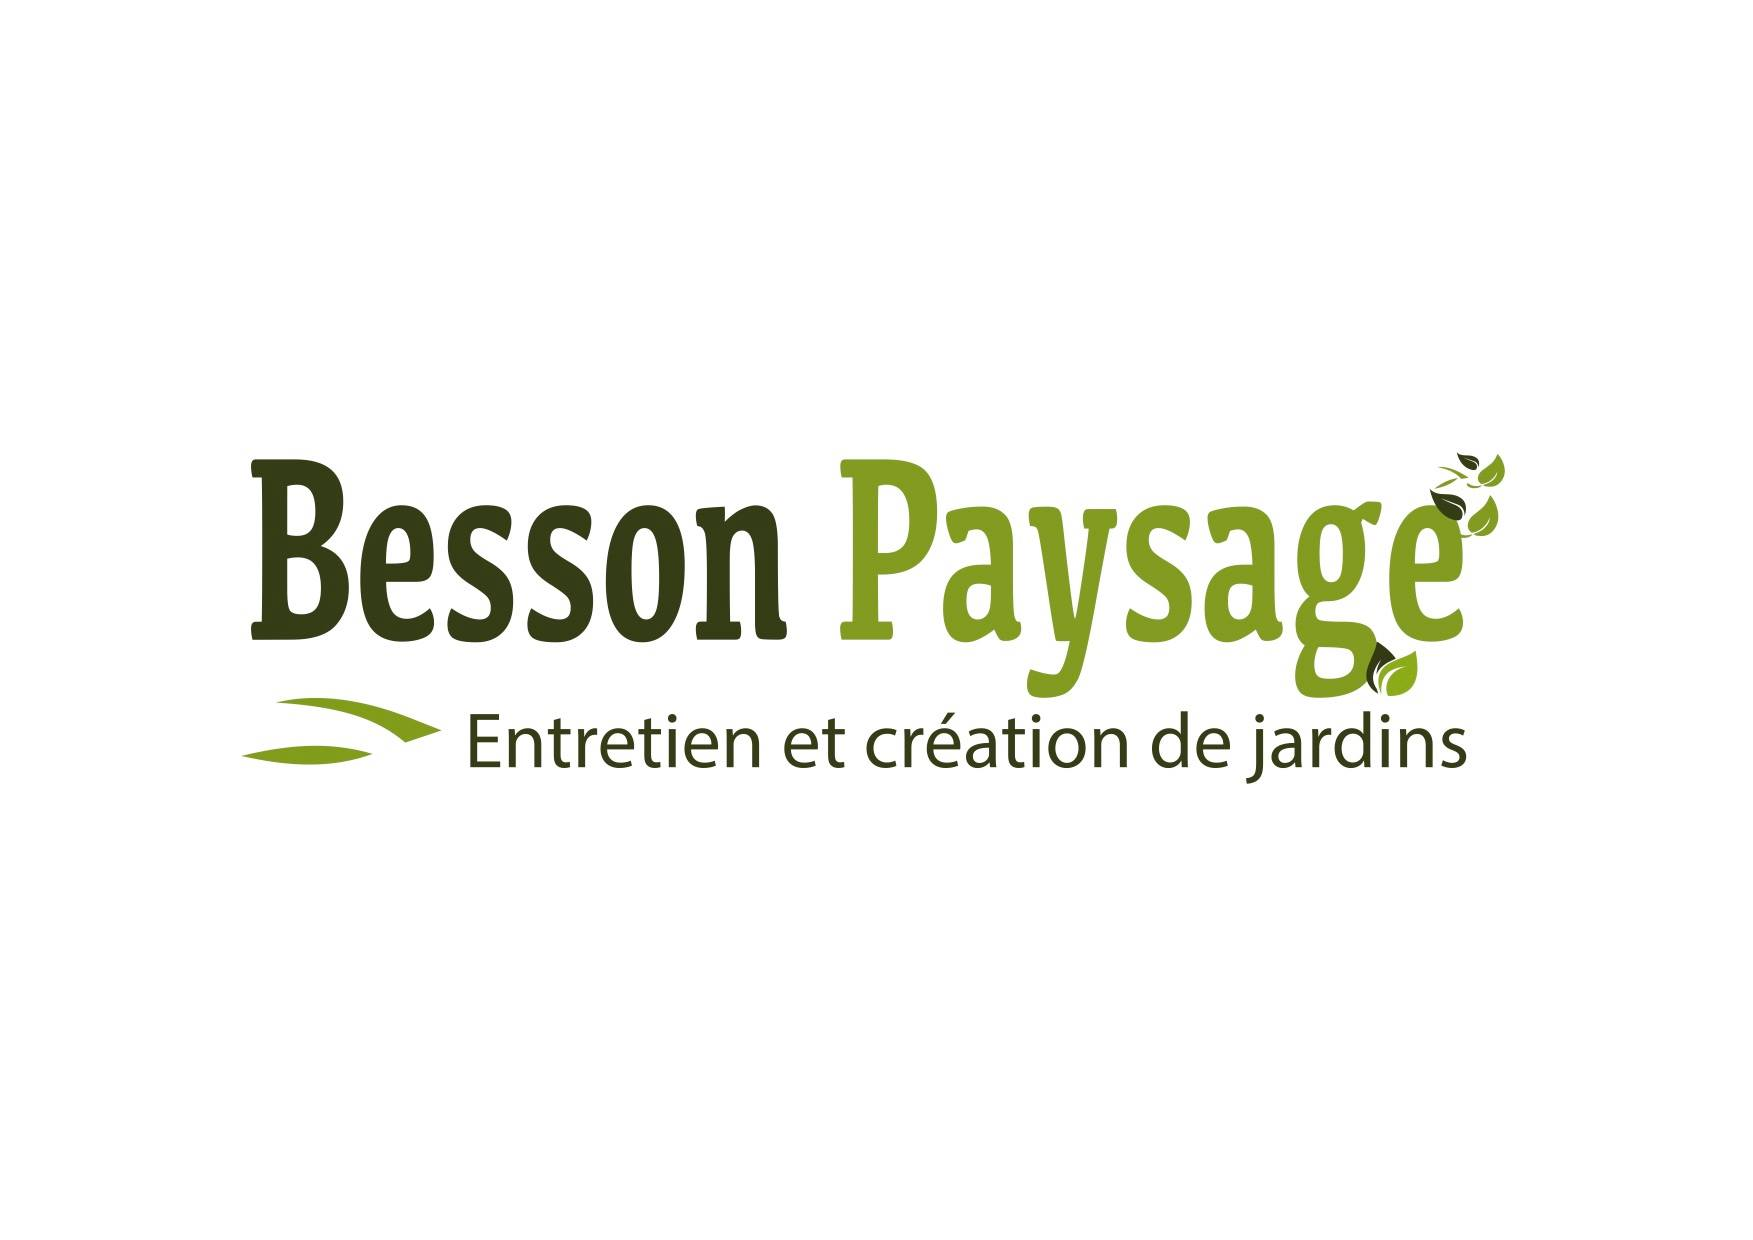 Besson Paysage